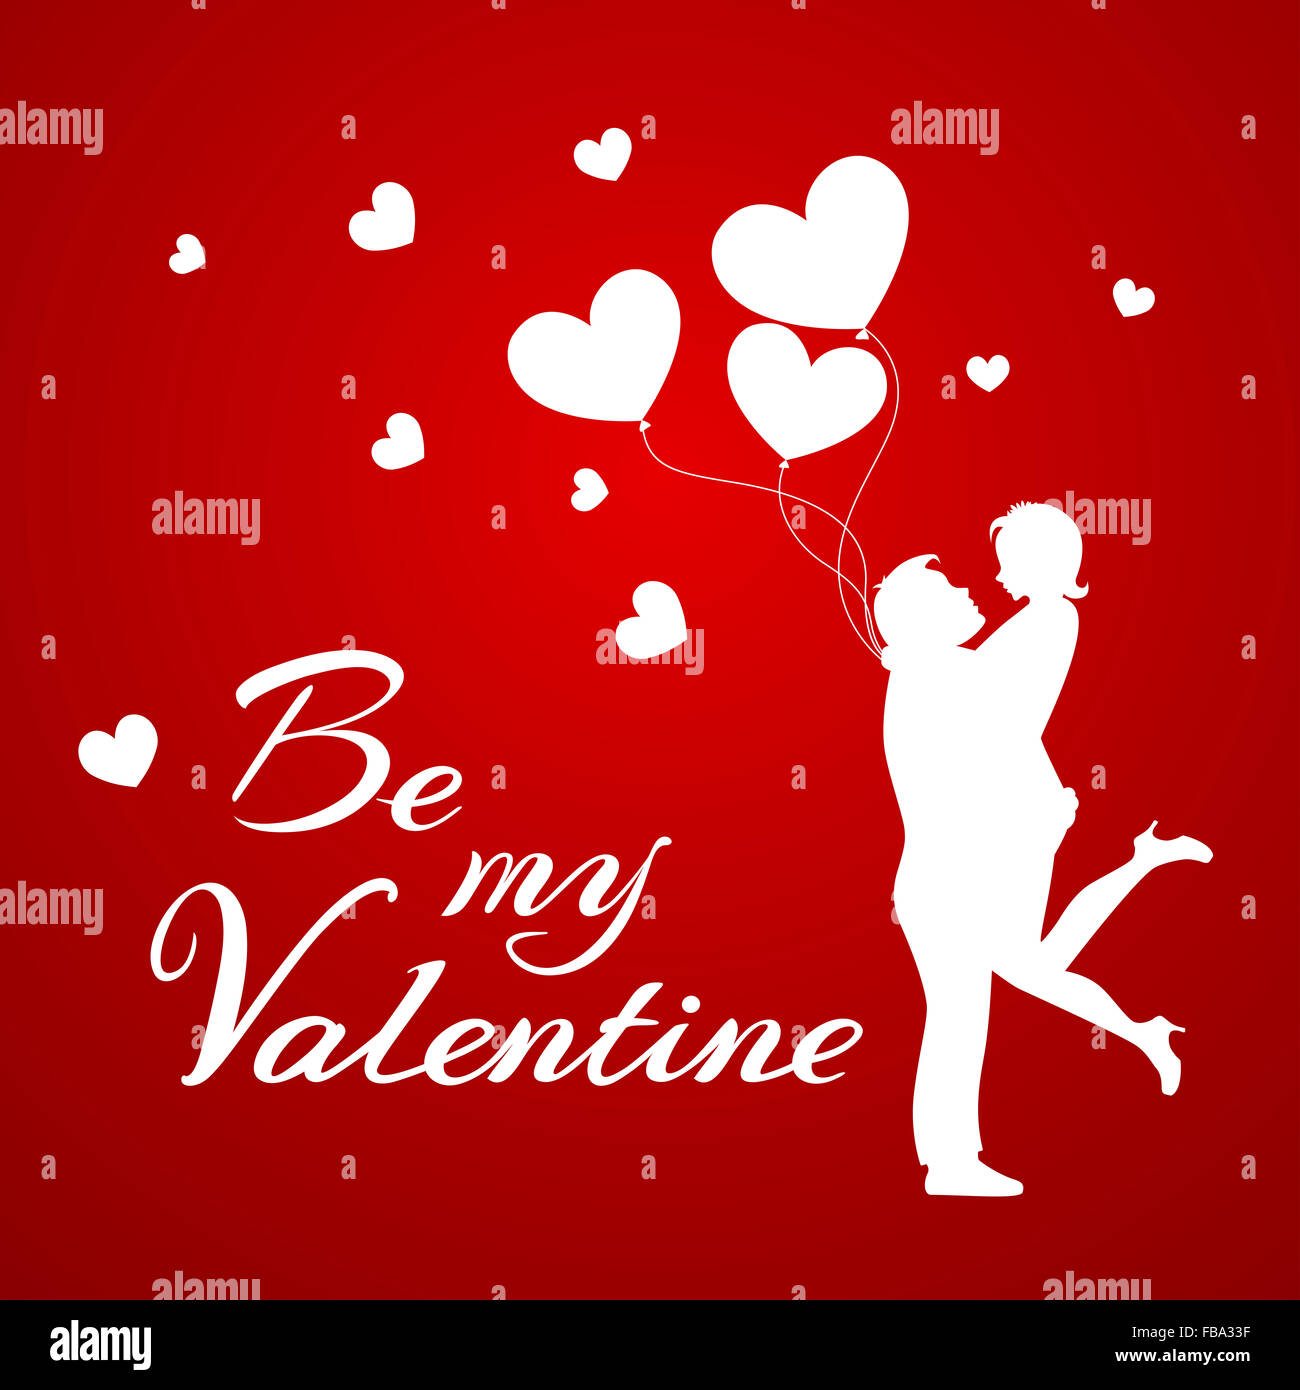 Romantic Background With Couple And Balloons For Valentine